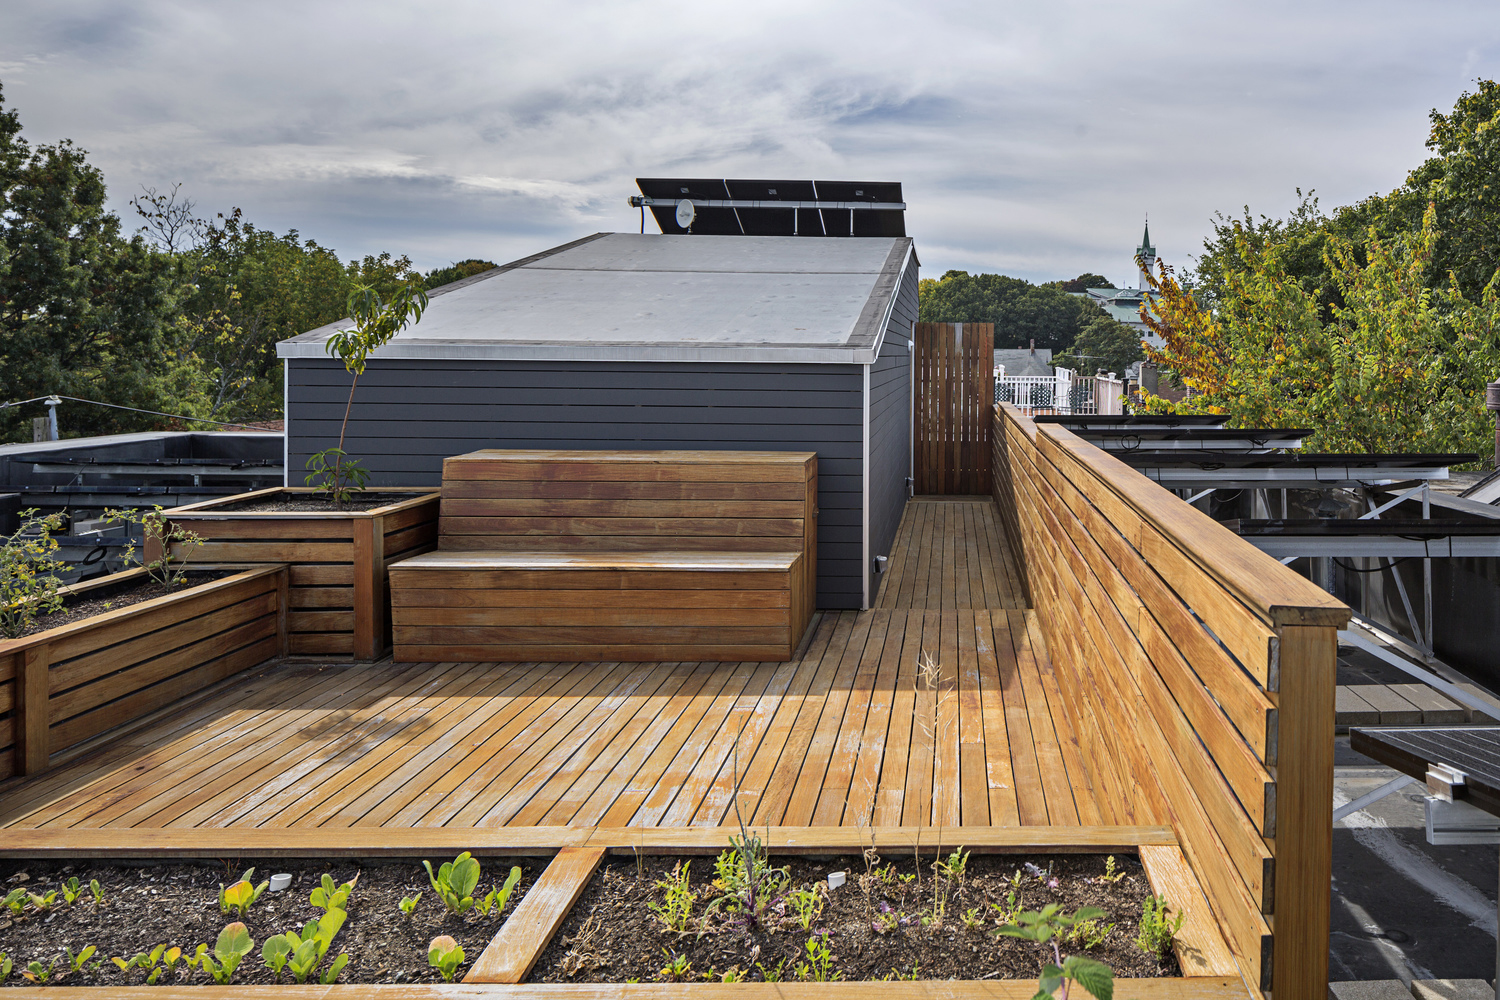 Roof top garden of Boston's first passive house – designed, developed and built by Placetailor.